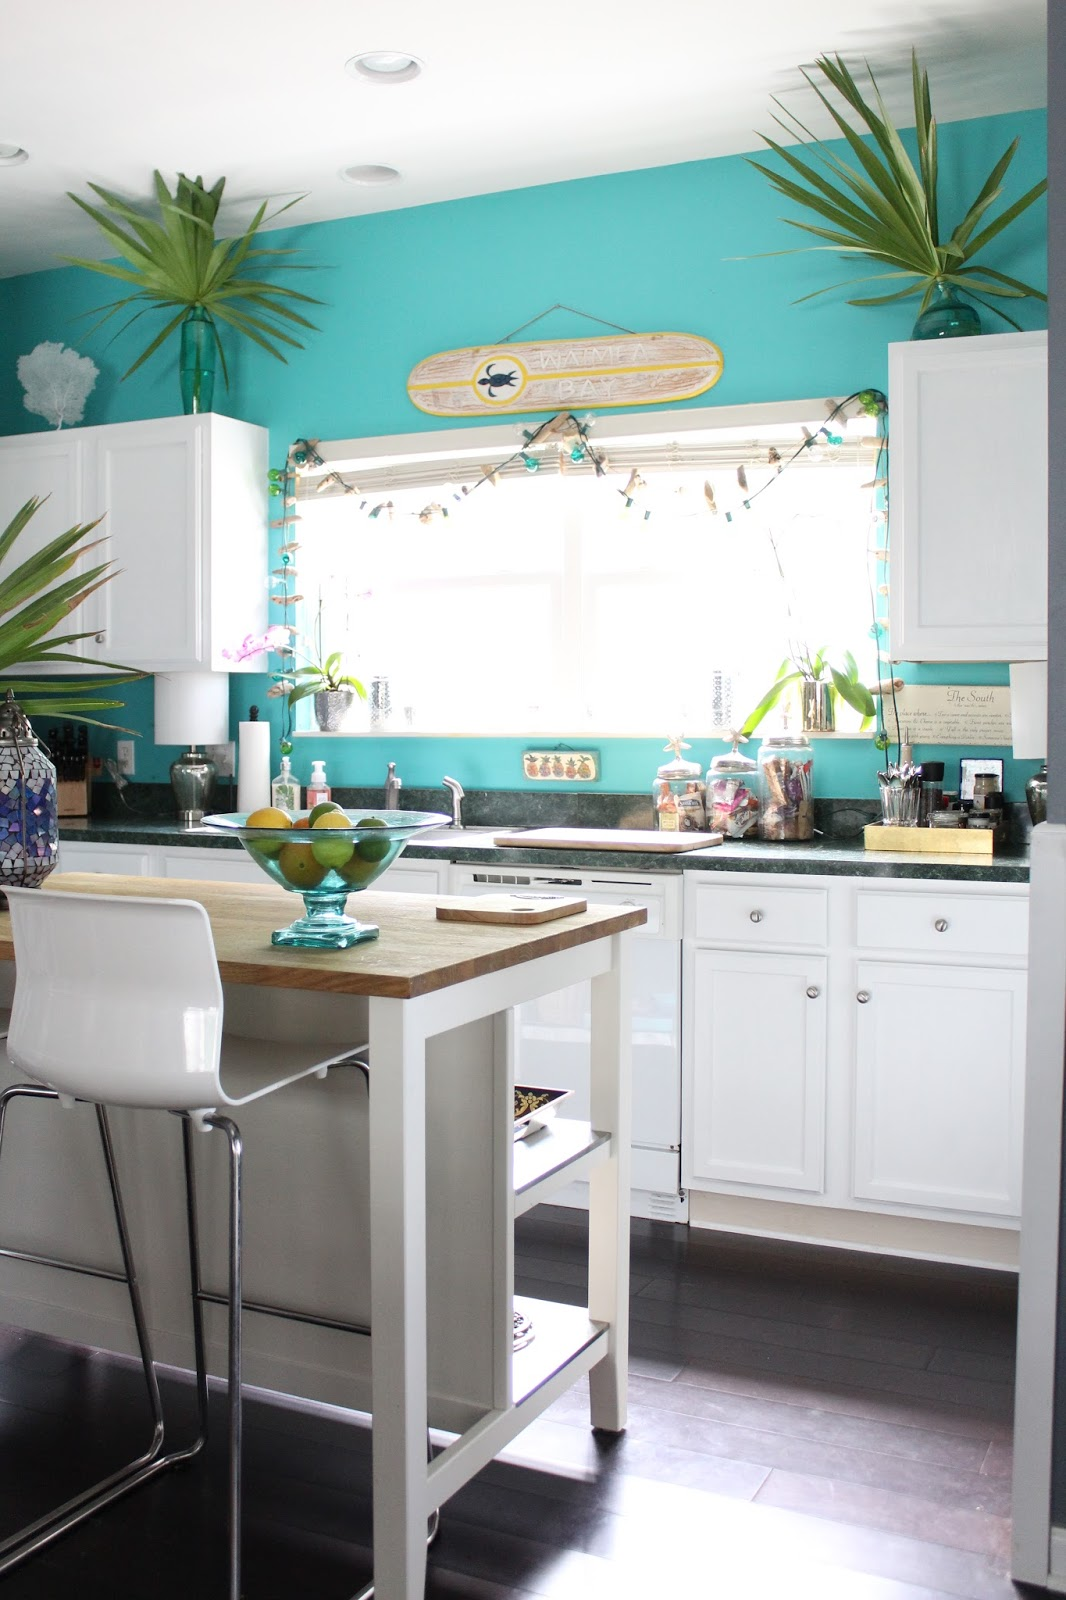 Life with a Dash of Whimsy: Beach House DIY: Painting Kitchen Cabinets